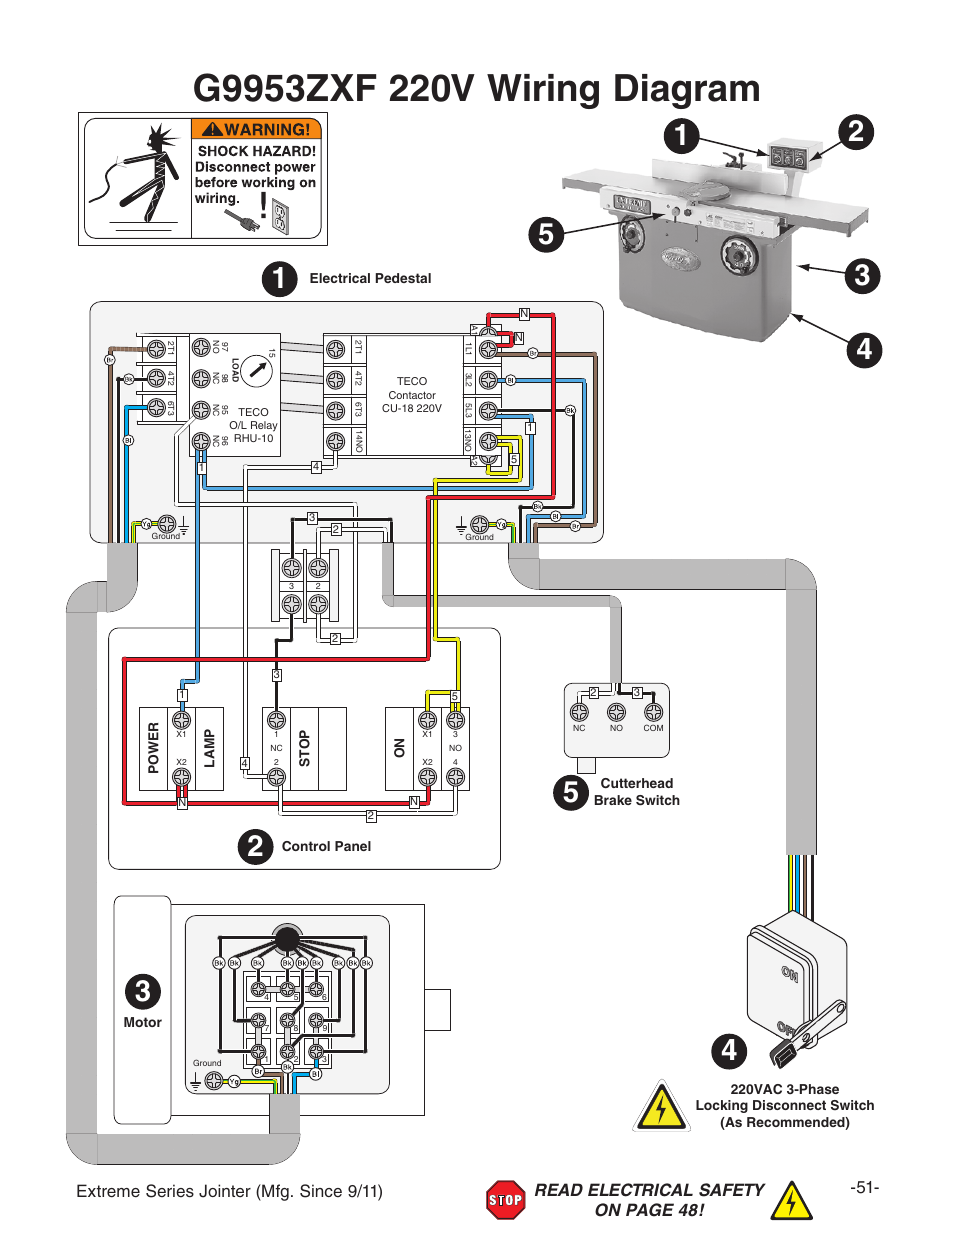 Grizzly Extreme Series Jointer G9953zxf User Manual Page 53 76 Wiring 220v Disconnect Switch Also For G9860